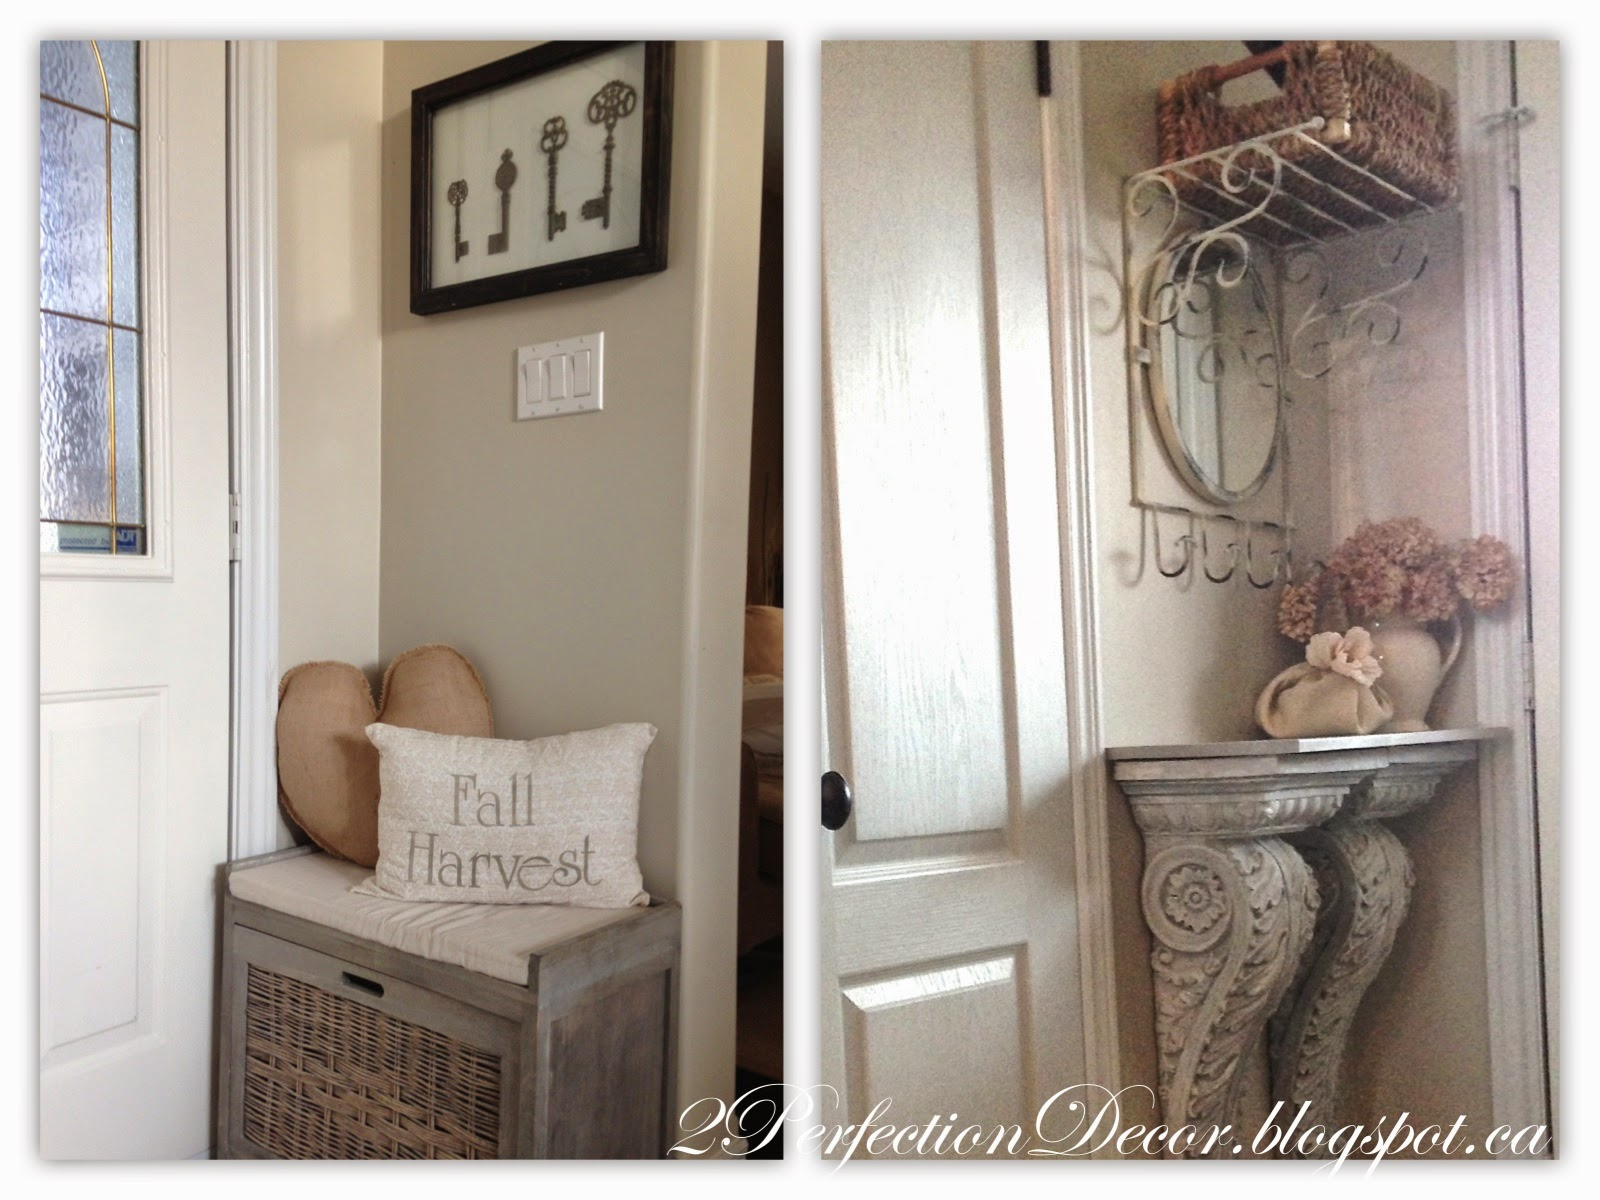 2perfection decor our entryway foyer reveal monday november 10 2014